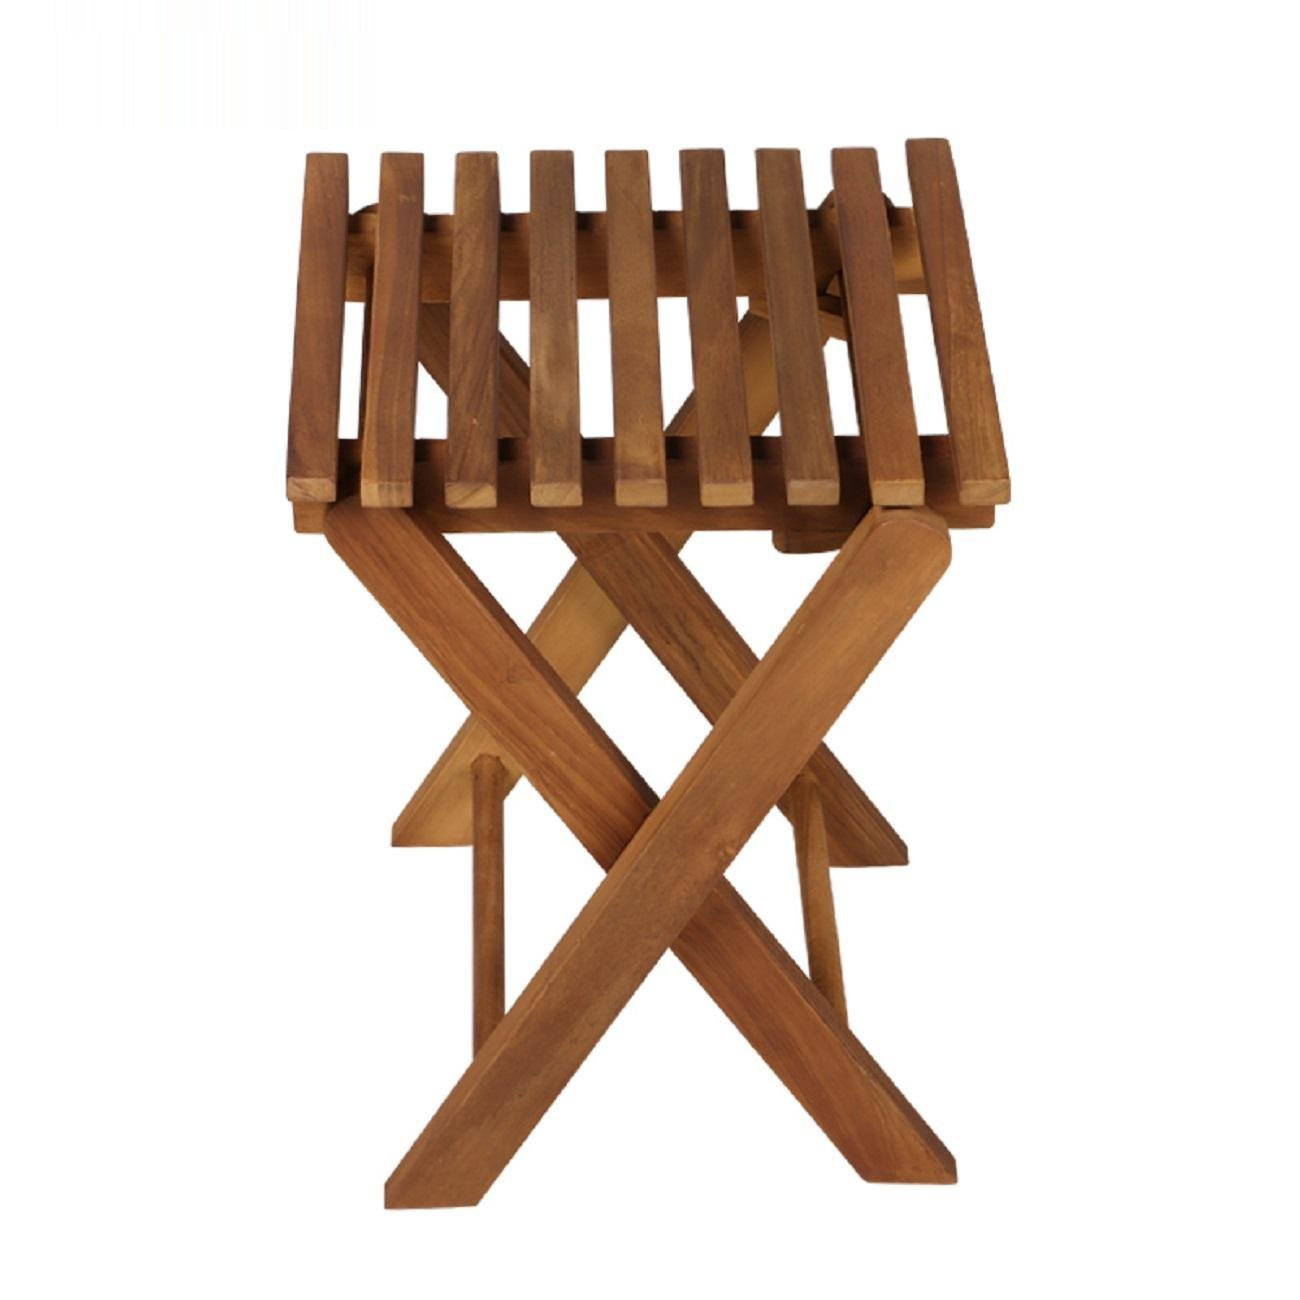 GAOJIAN Outdoor Folding Chair Stool Portable Fishing Chair Leisure Solid Wood Stool Teak Color